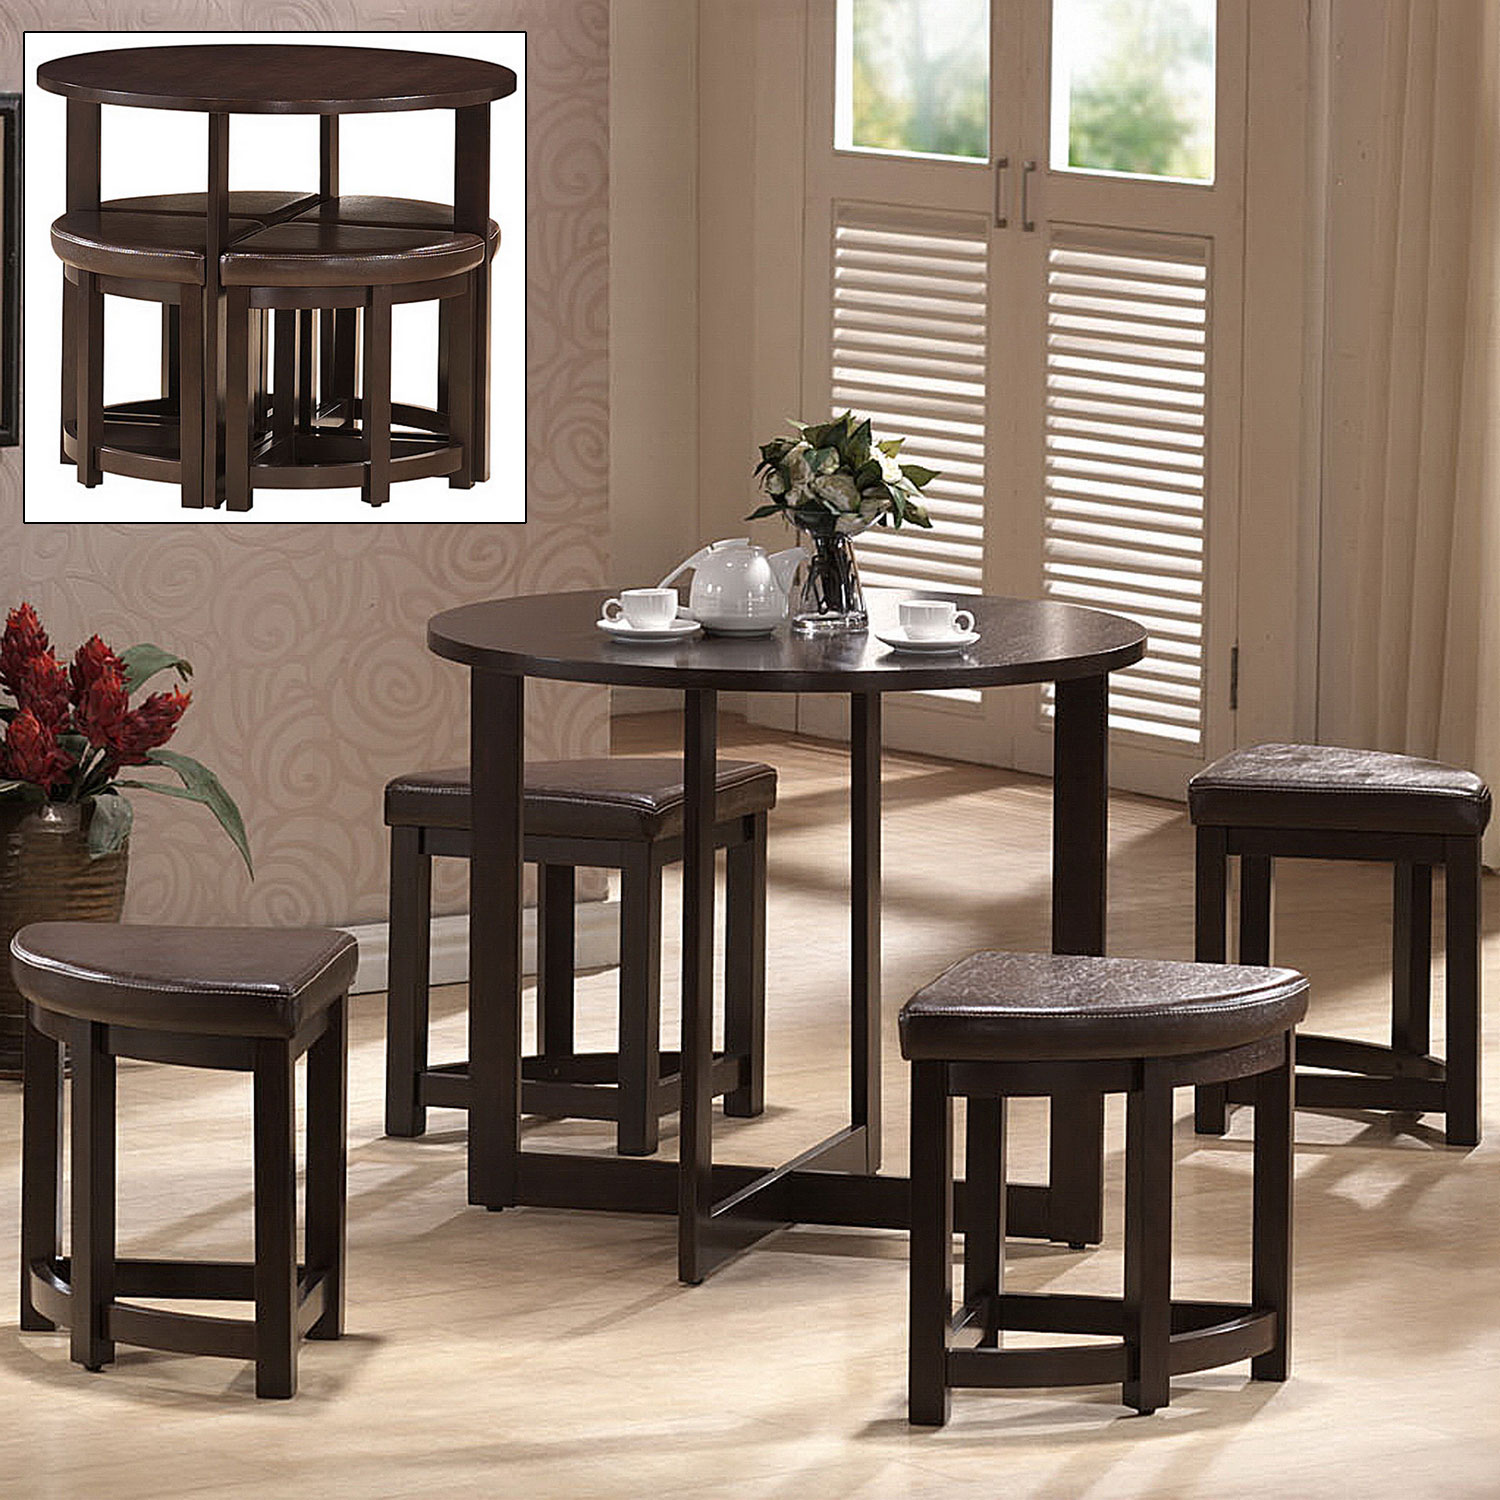 Bar Table Set Rochester Bar Table Set With Nesting Stools In Bar Table Sets